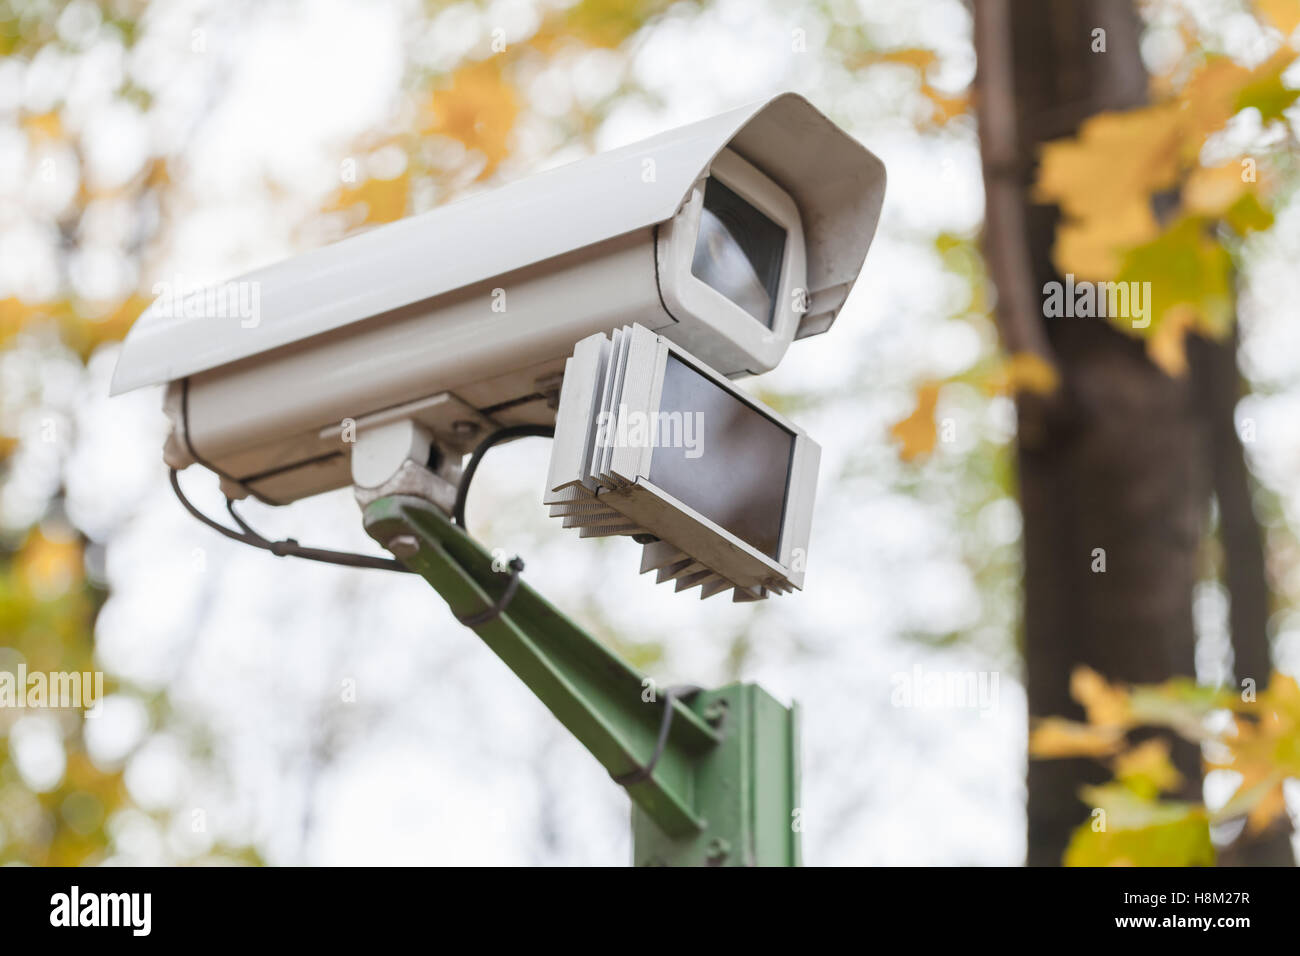 Close-up photo of an outdoor surveillance camera with motion detector in autumnal park - Stock Image